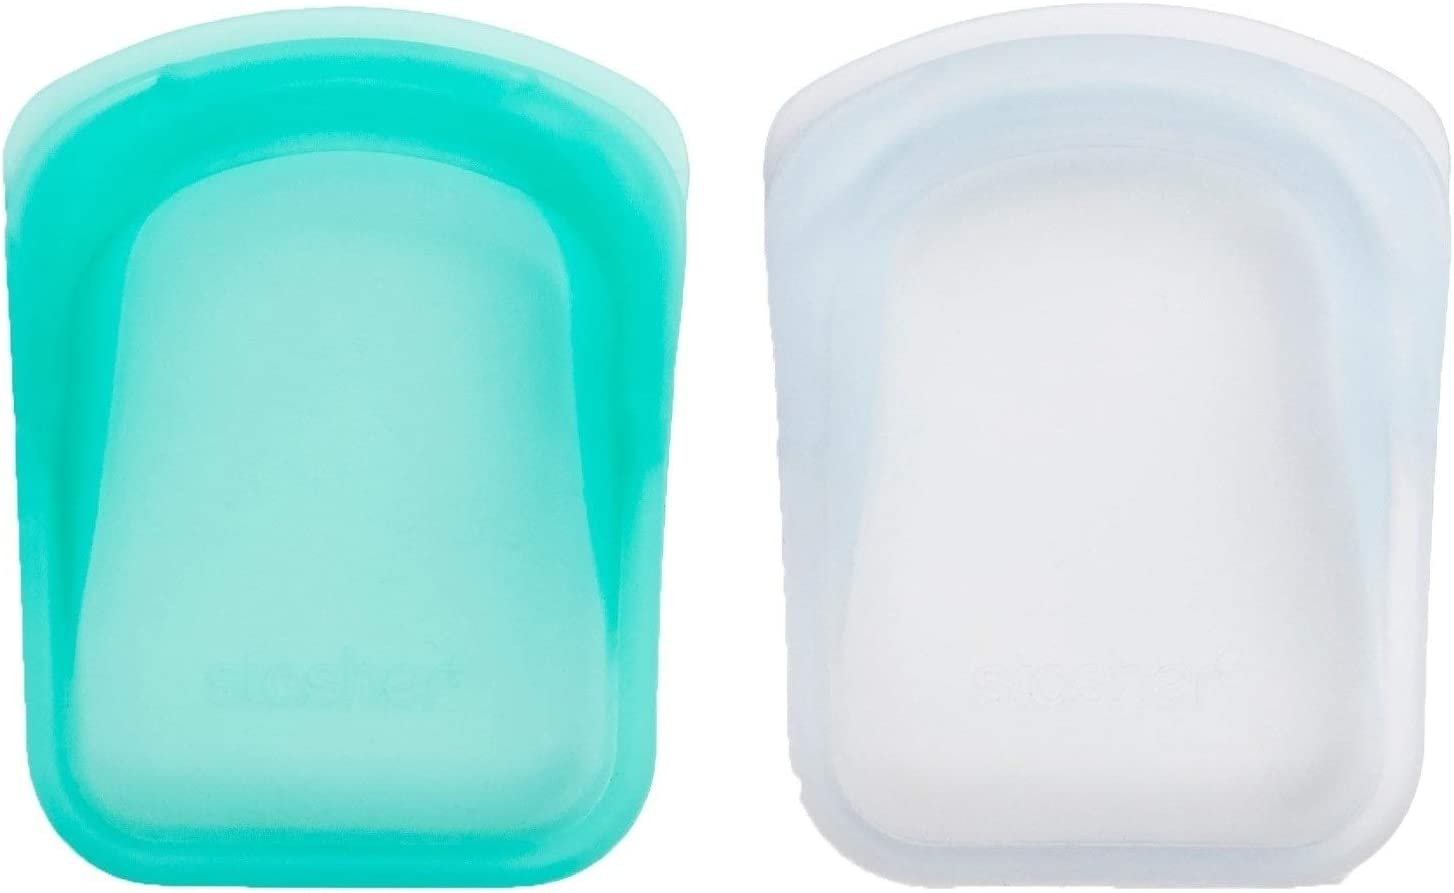 Stasher Re-Usable Food-Grade Platinum Silicone Pocket Bag for Eating from/Storing in/Organising/Travelling, 8.25 x 12.05 cm, Set of 2, Clear and Aqua